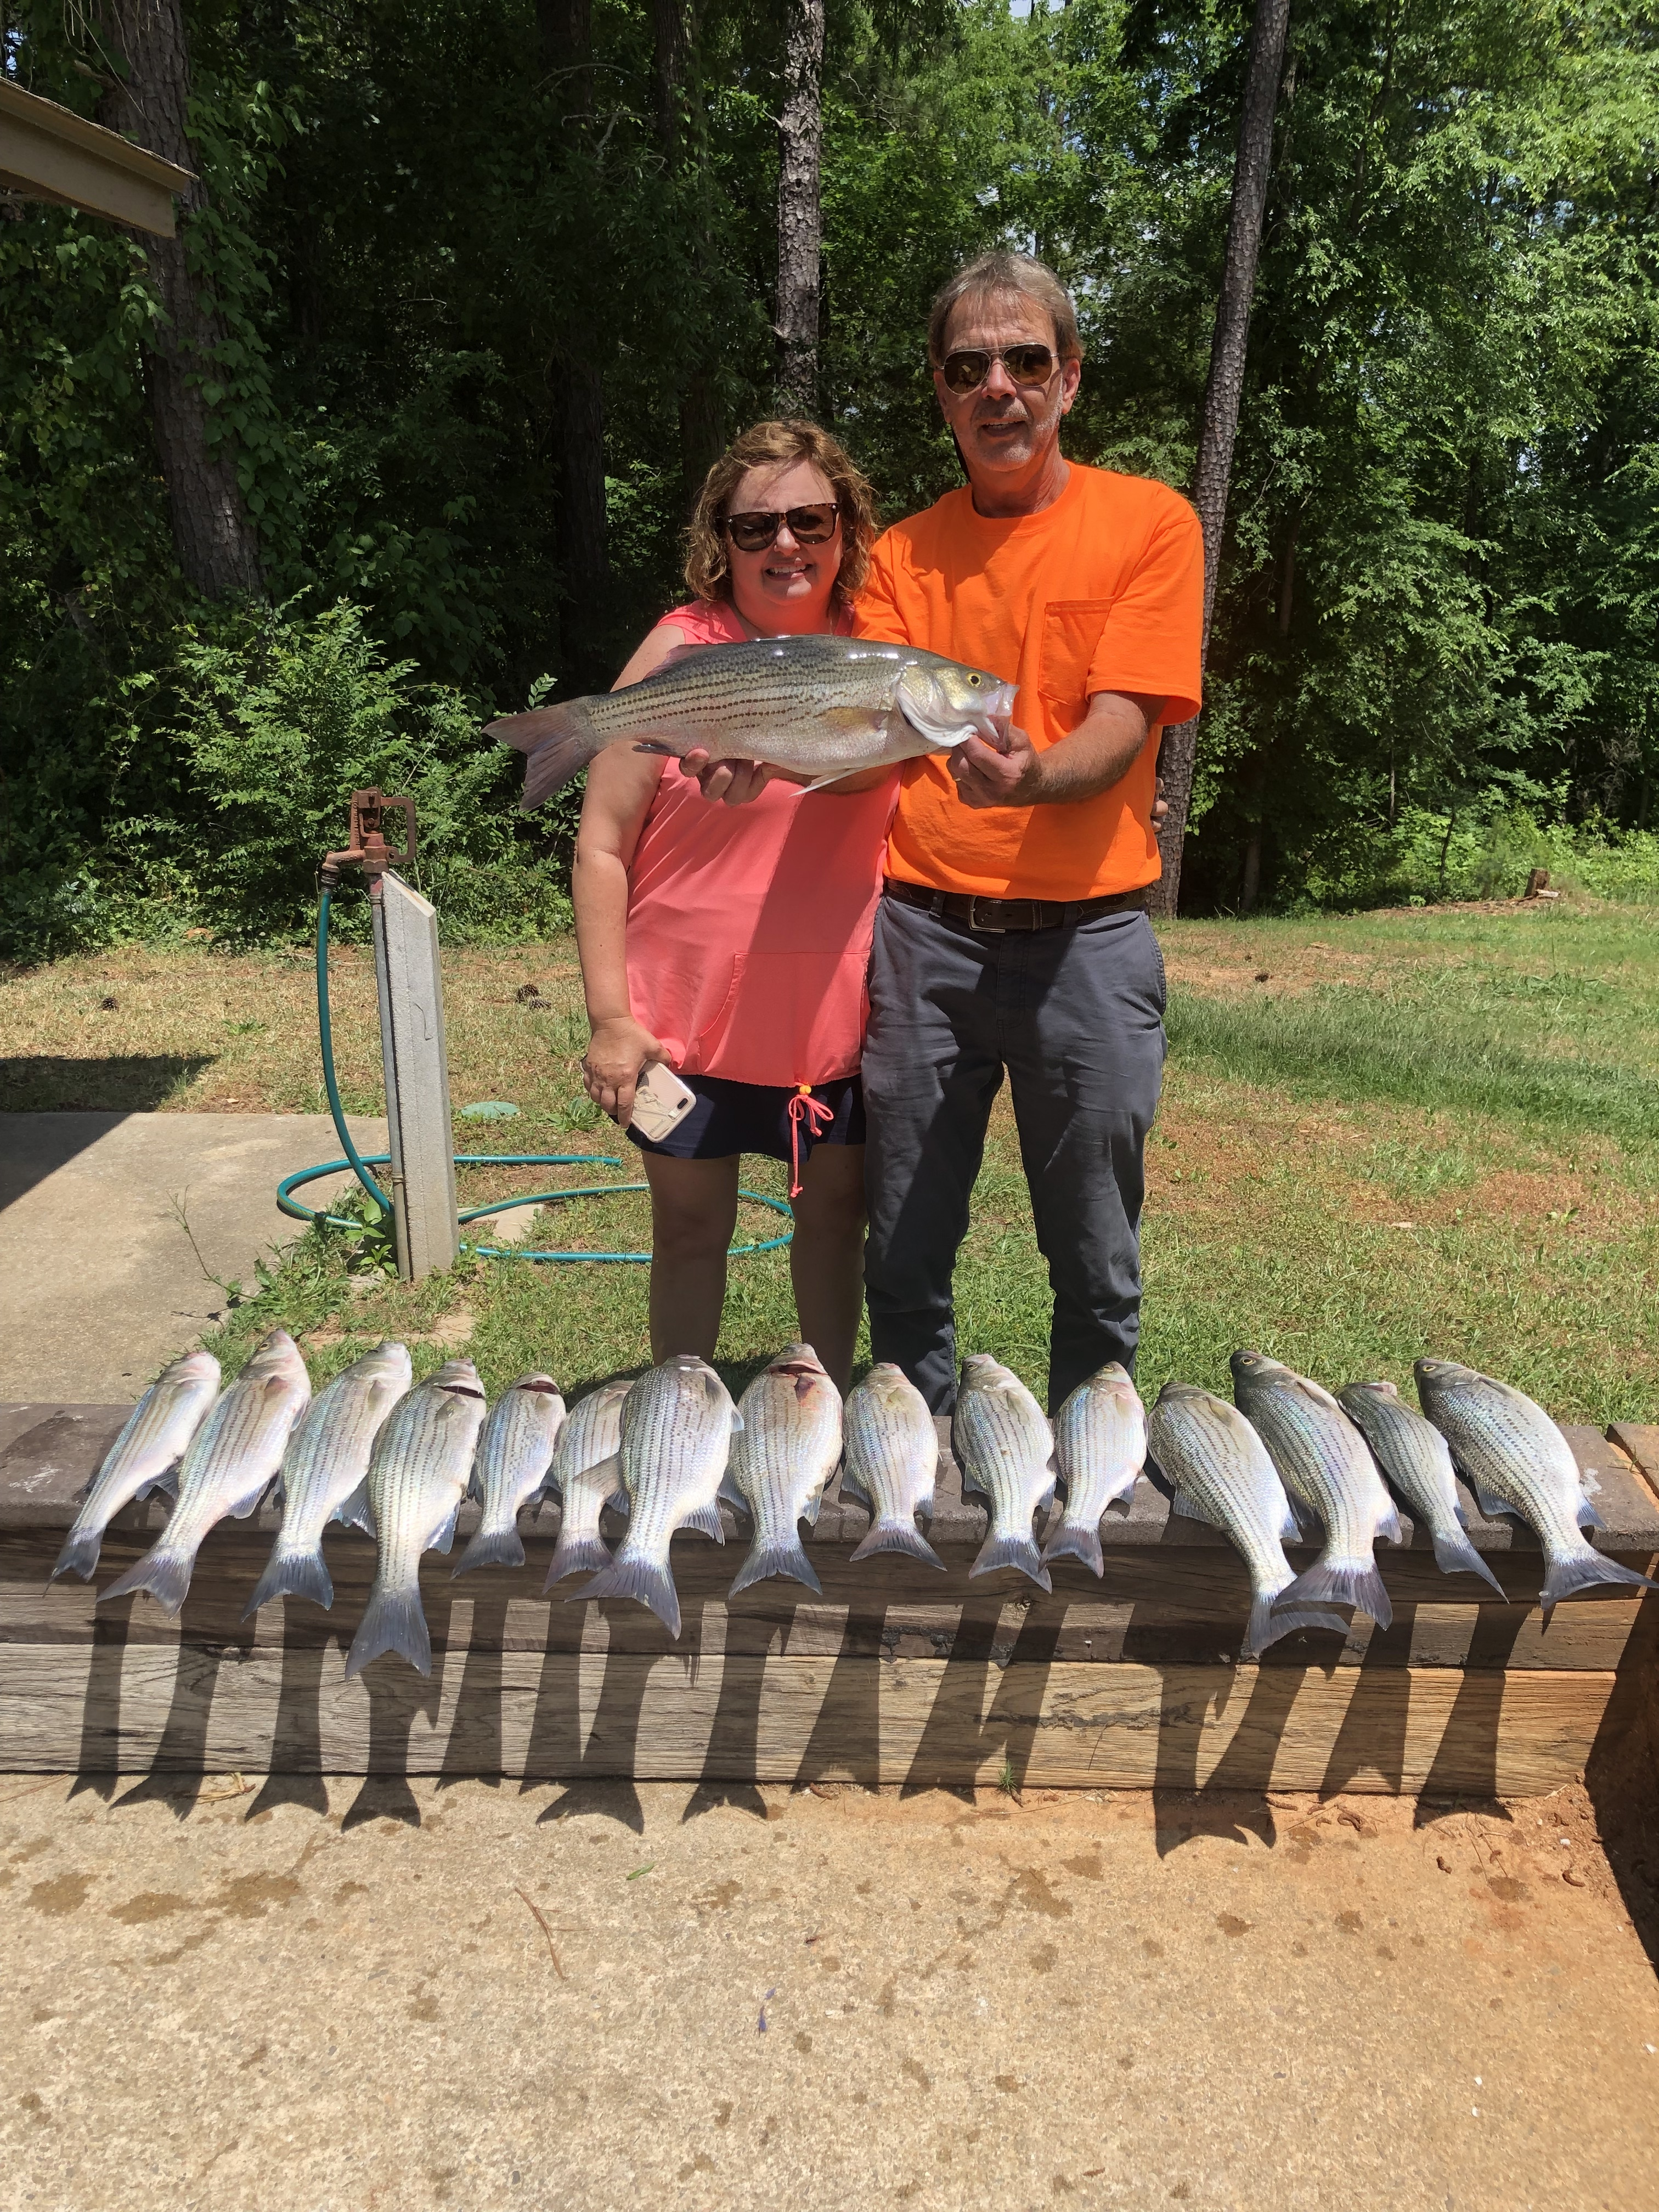 May-2-2019-Leigh-Ann-and-Buddy-Russell-with-there-nice-catch.